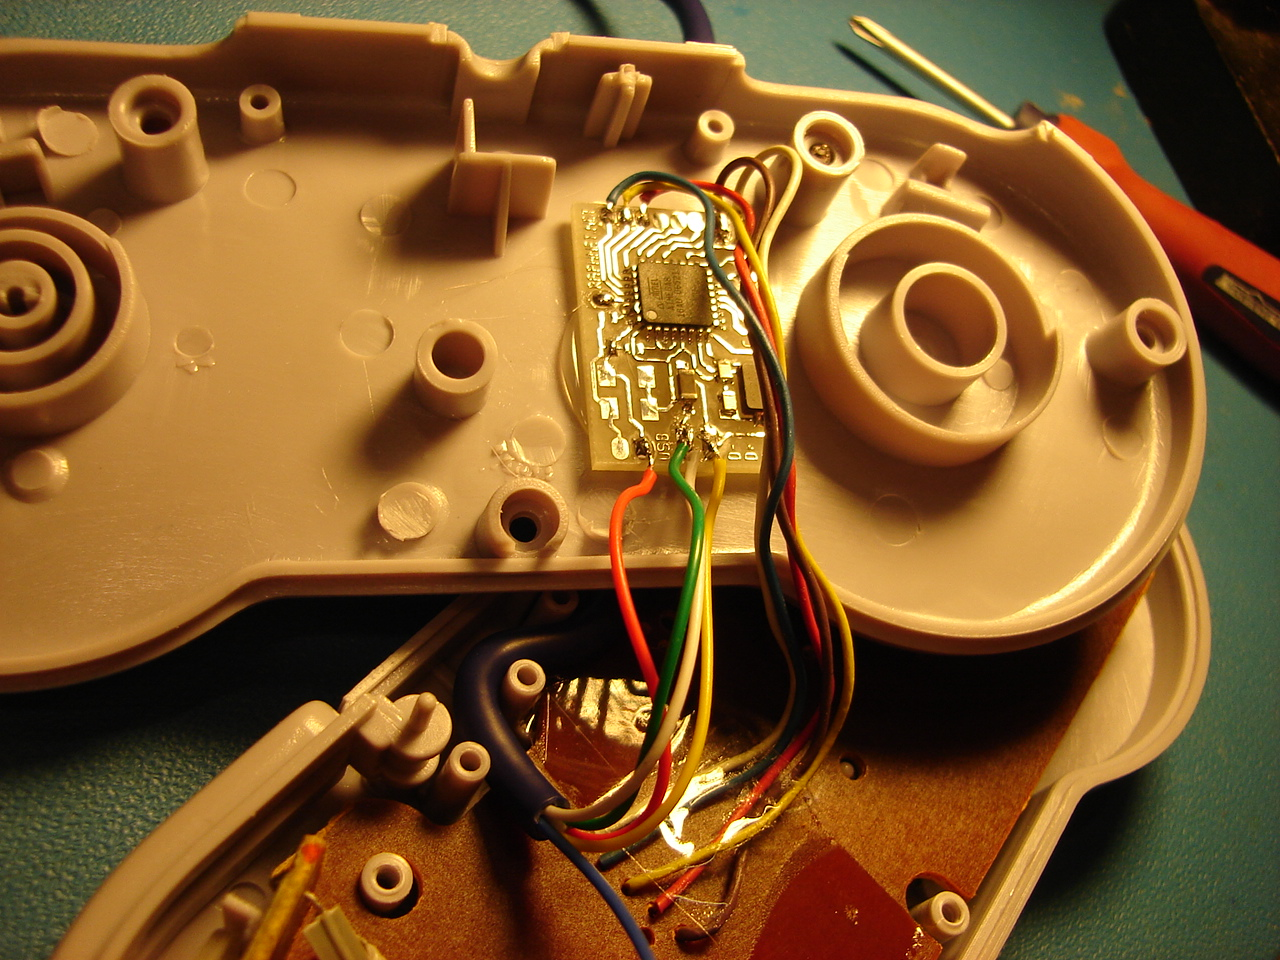 N64 Snes Nes Controller To Gamecube Wii Conversion Project Nintendo Wiring Diagram Inside An Clone